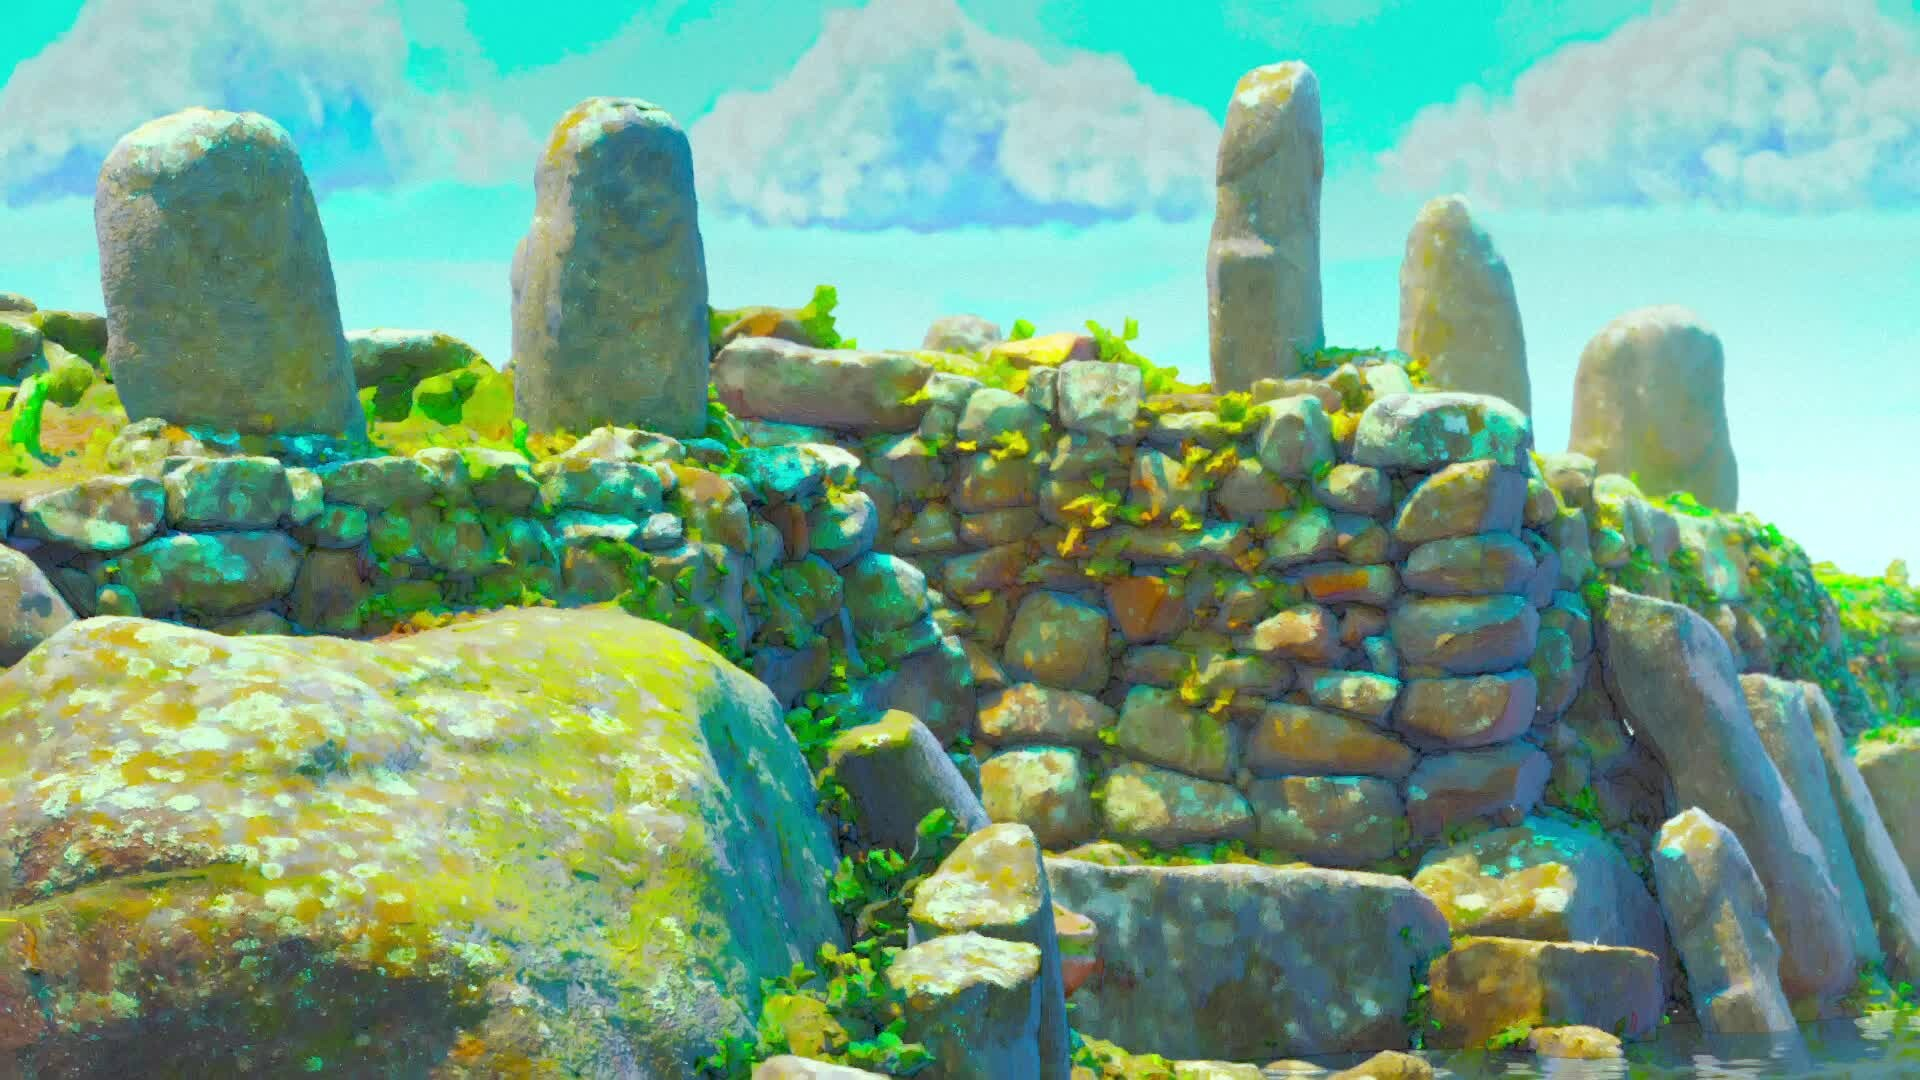 Stone Ruins II - (Stylized 3D Environment Rendering - 2021)